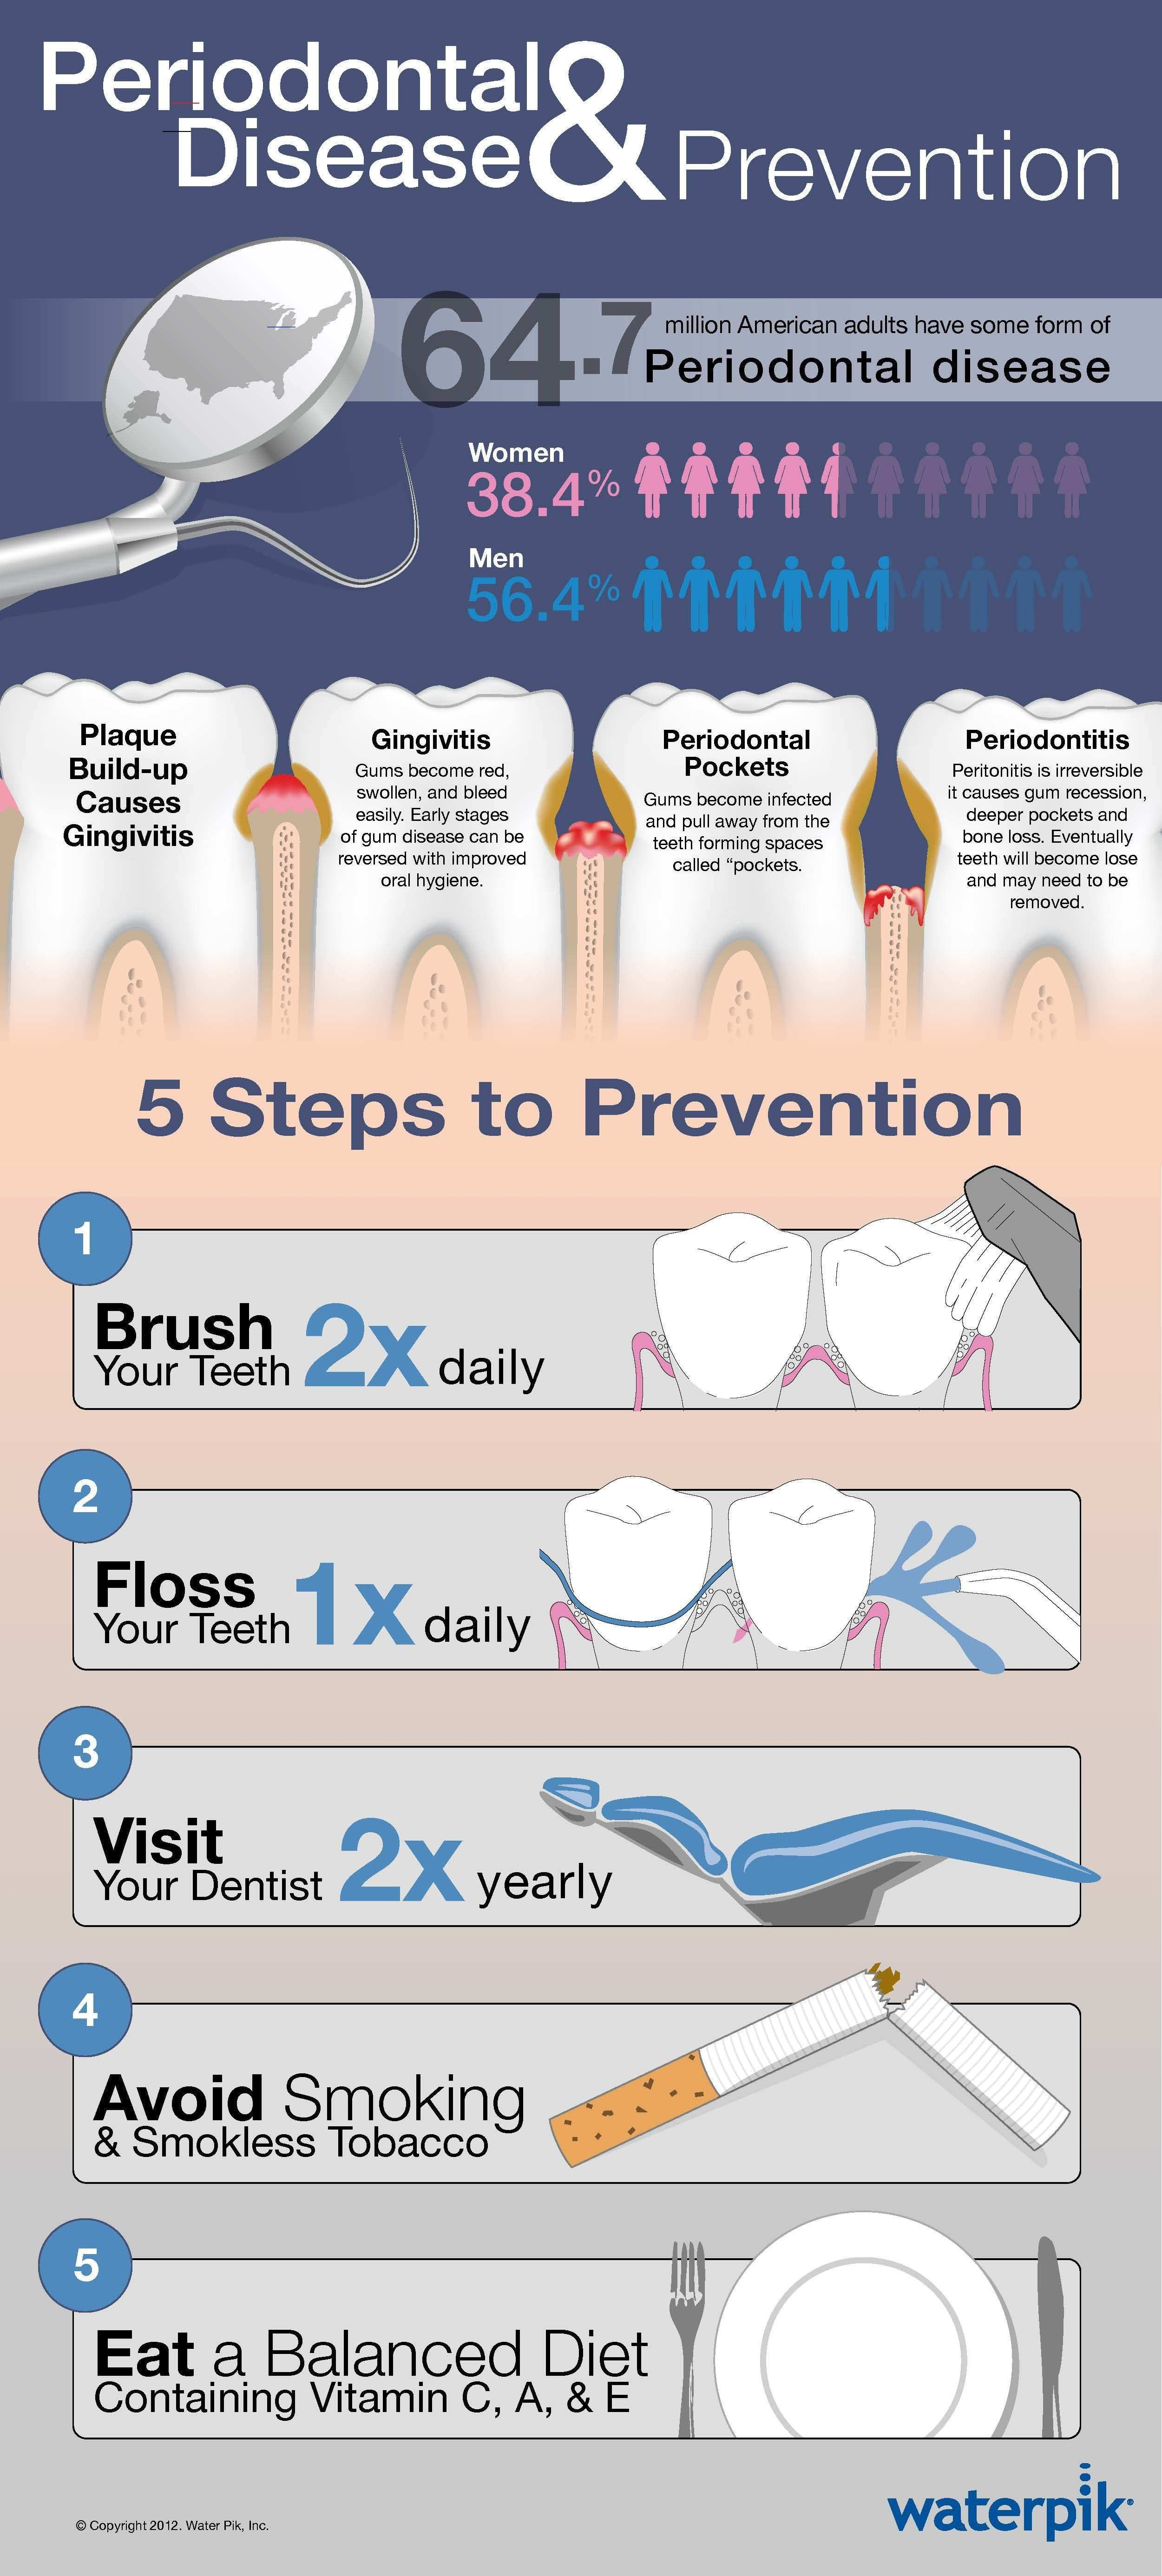 3719521e16165dda56cb6e5a4a1cb5c3 - How To Get Rid Of Tooth Pain After A Filling